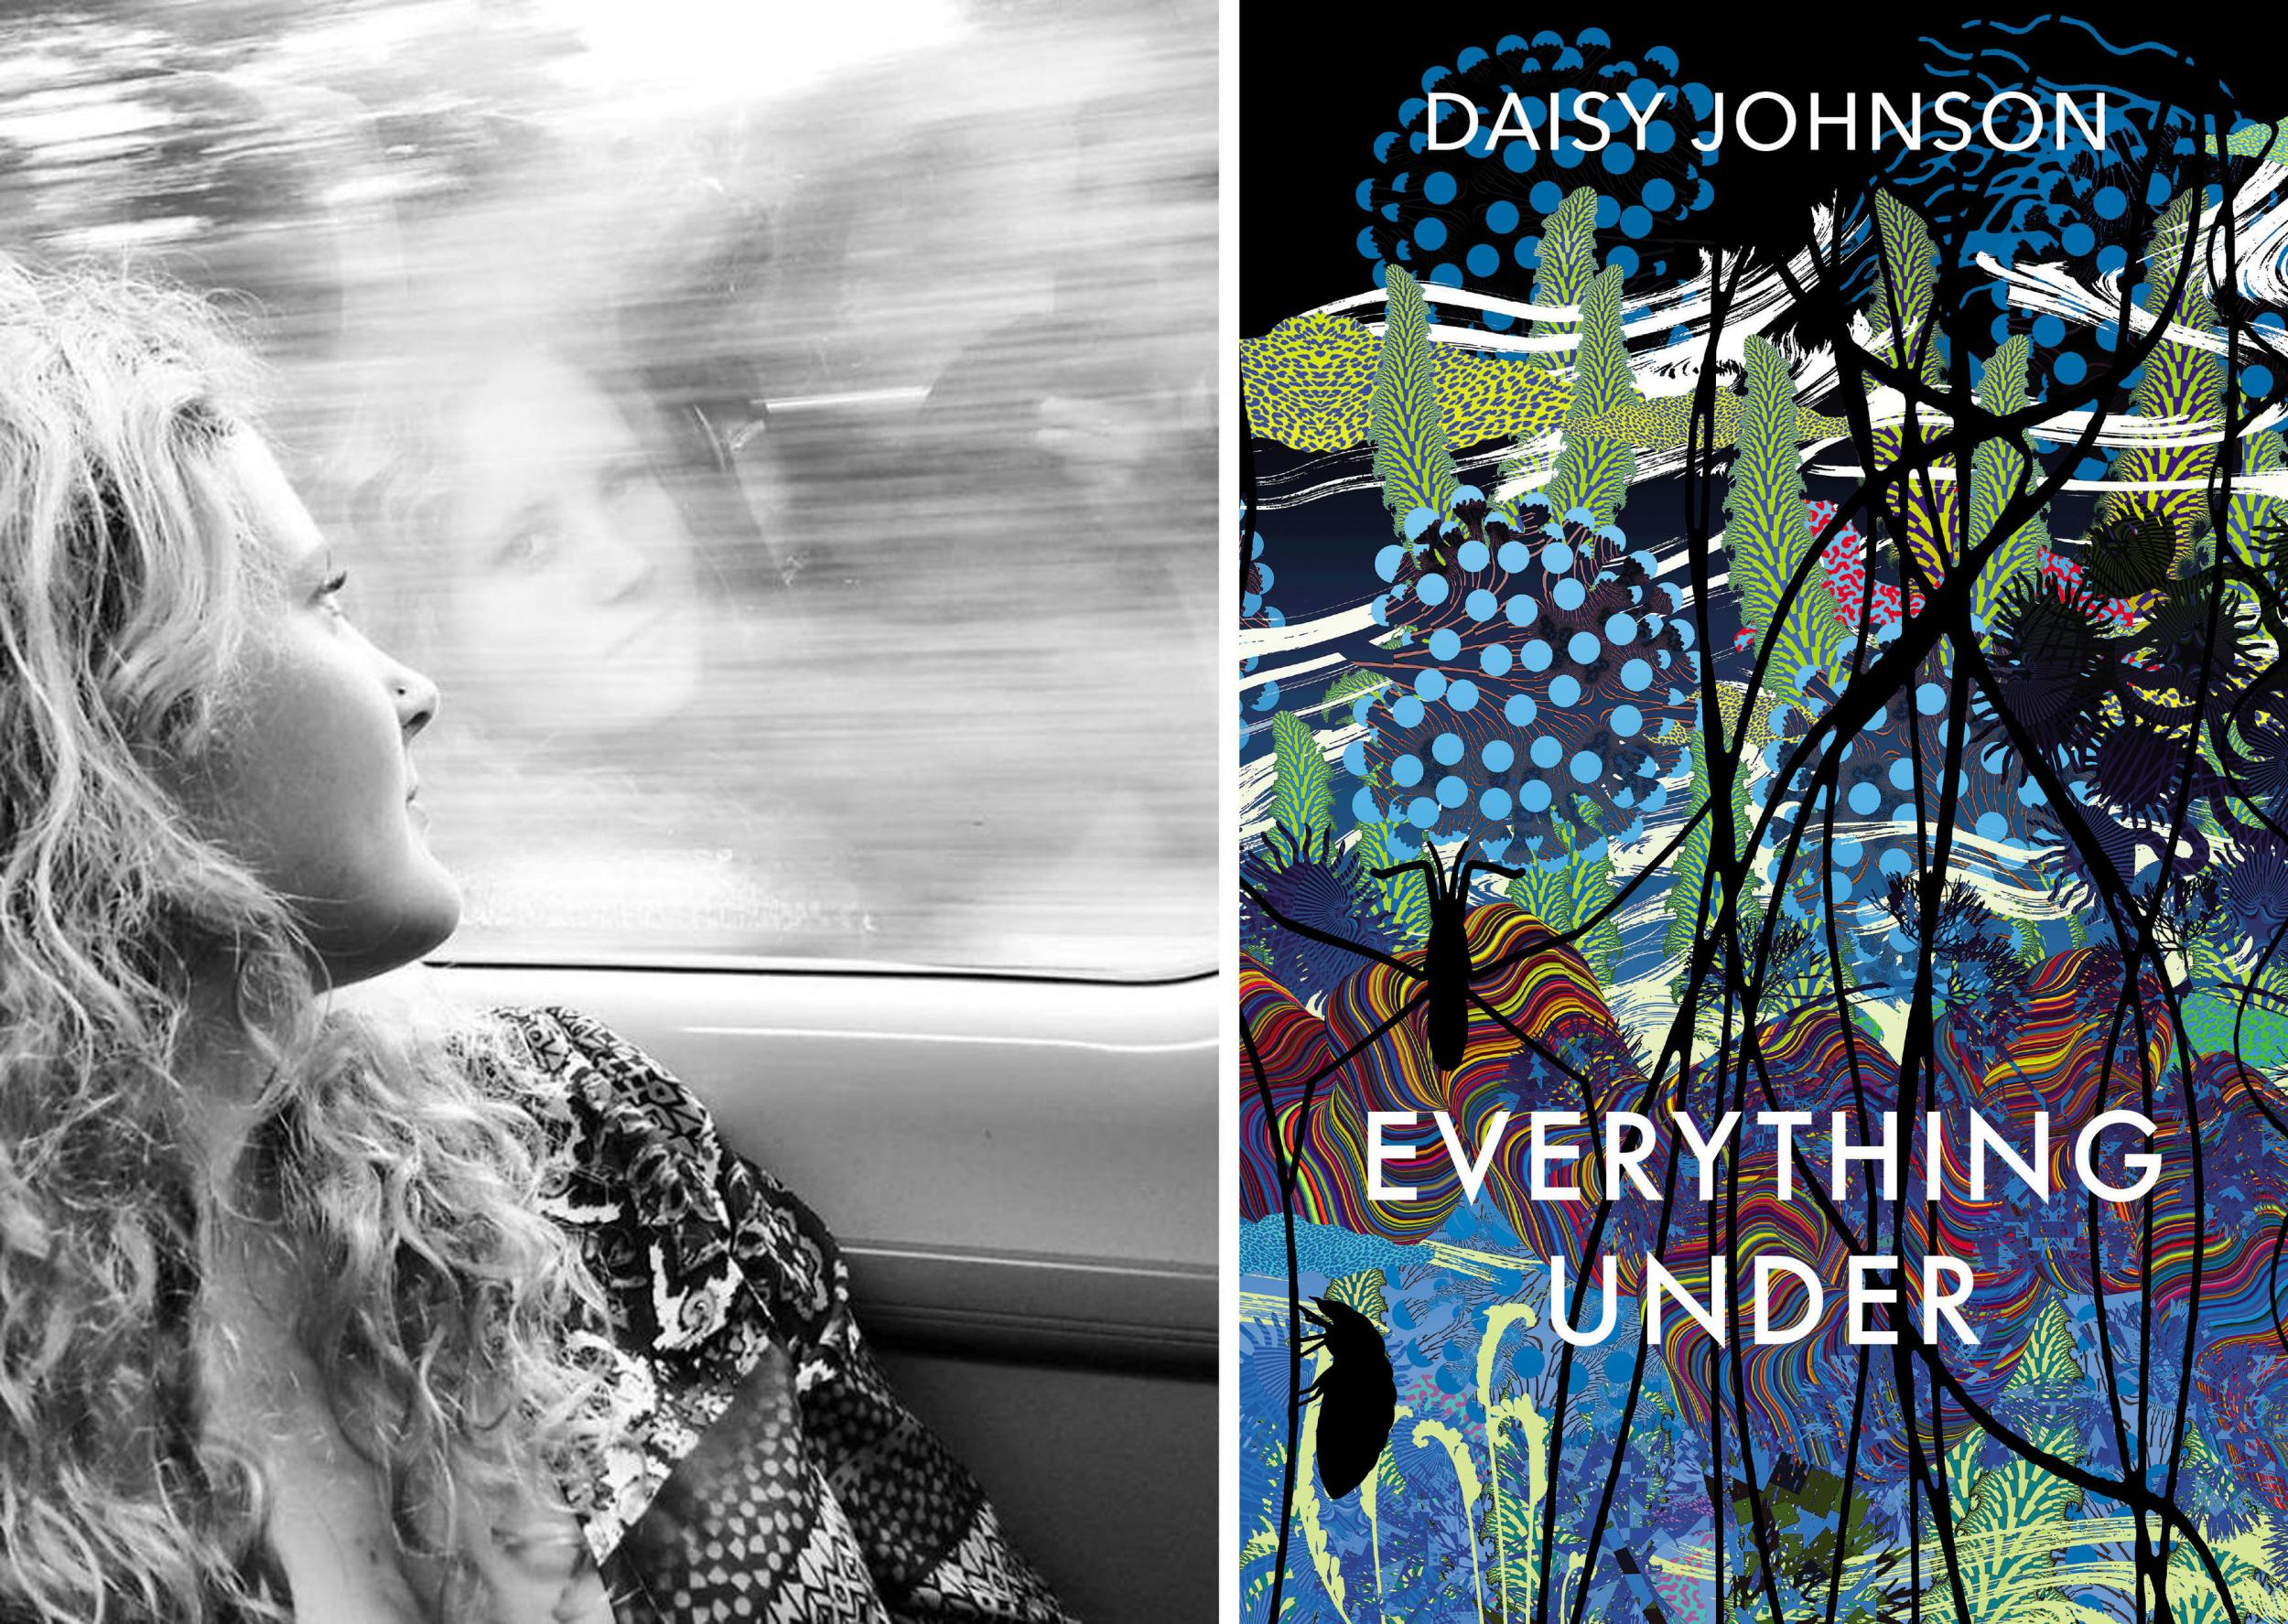 Daisy Johnson, the youngest ever author to make the Man Booker shortlist